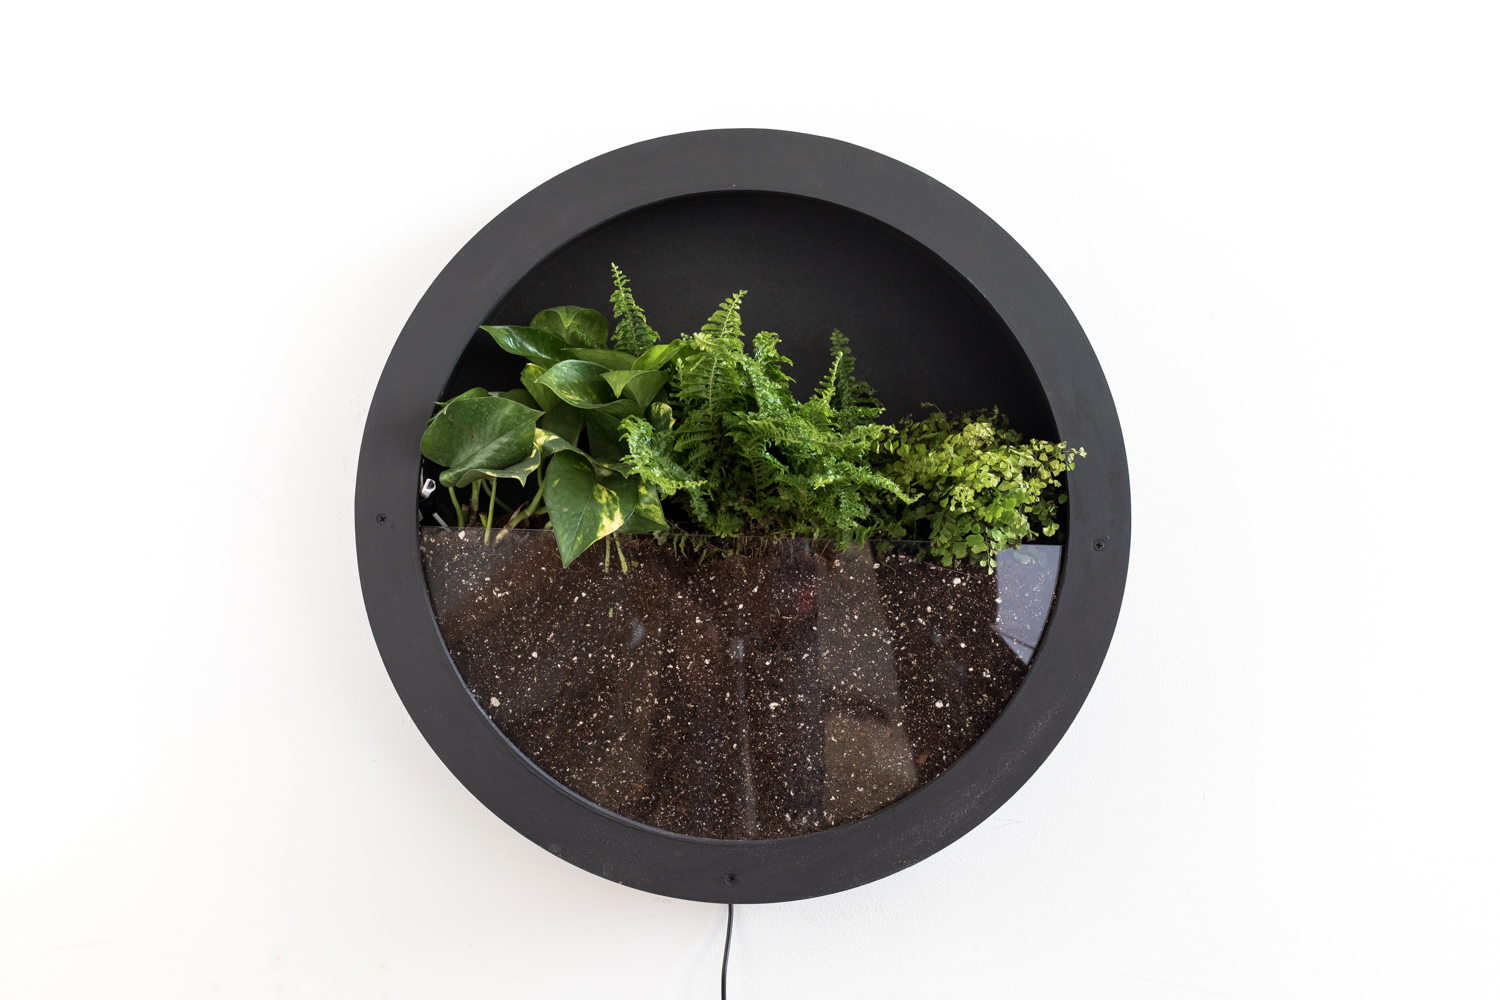 Living Walls U0026 Vertical Terrariums As Wall Mounted Living Art! A Patch Of  Nature On Your Wall With Air Purifying Plants, Full Spectrum LEDs Lighting,  ...